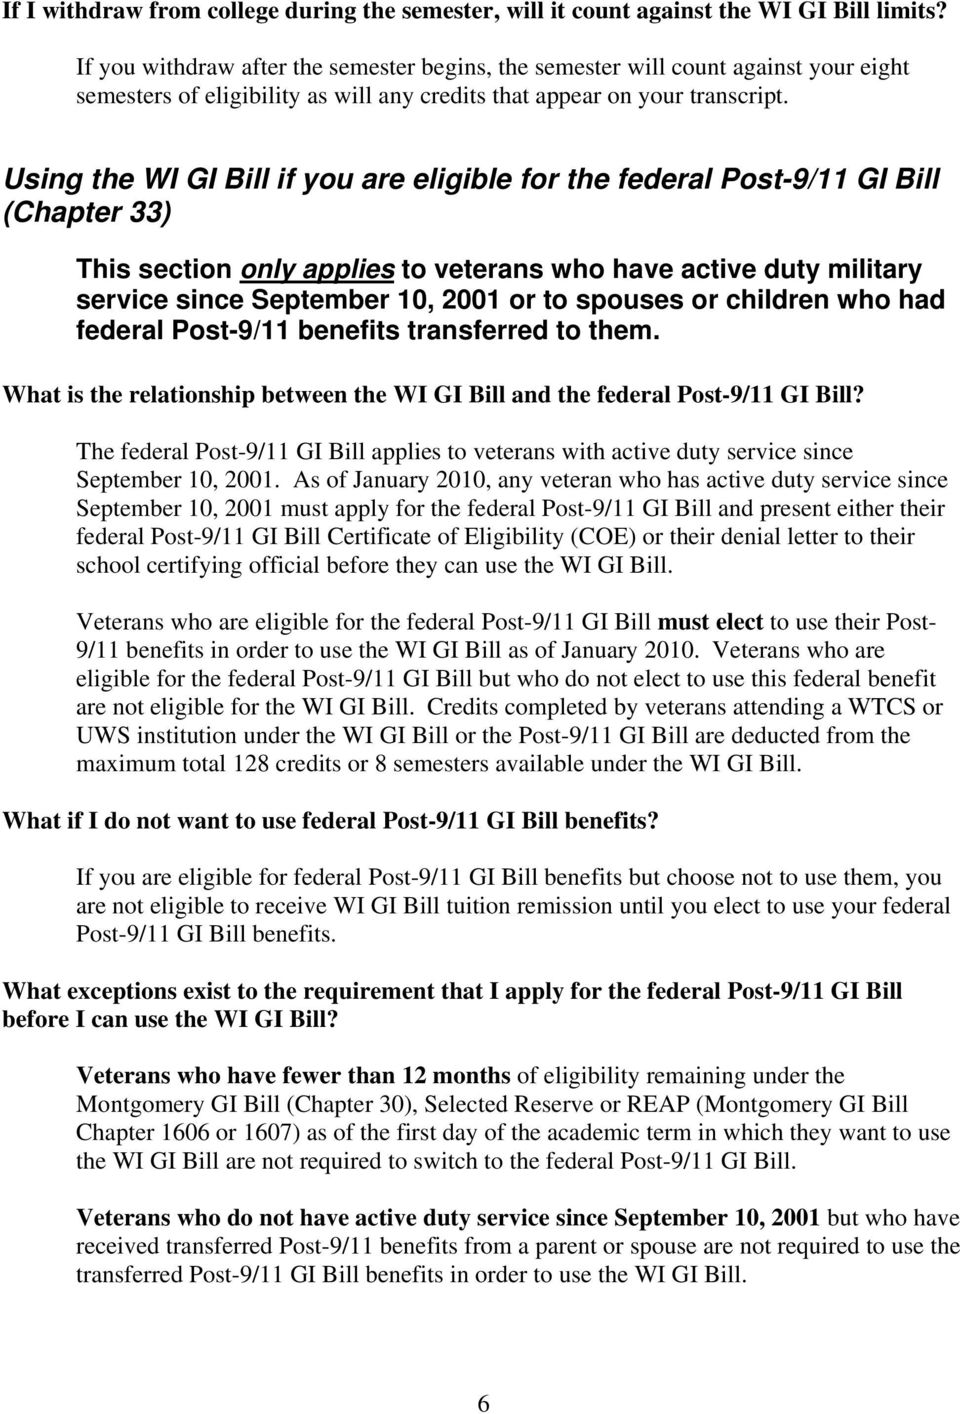 using the wi gi bill if you are eligible for the federal post 9